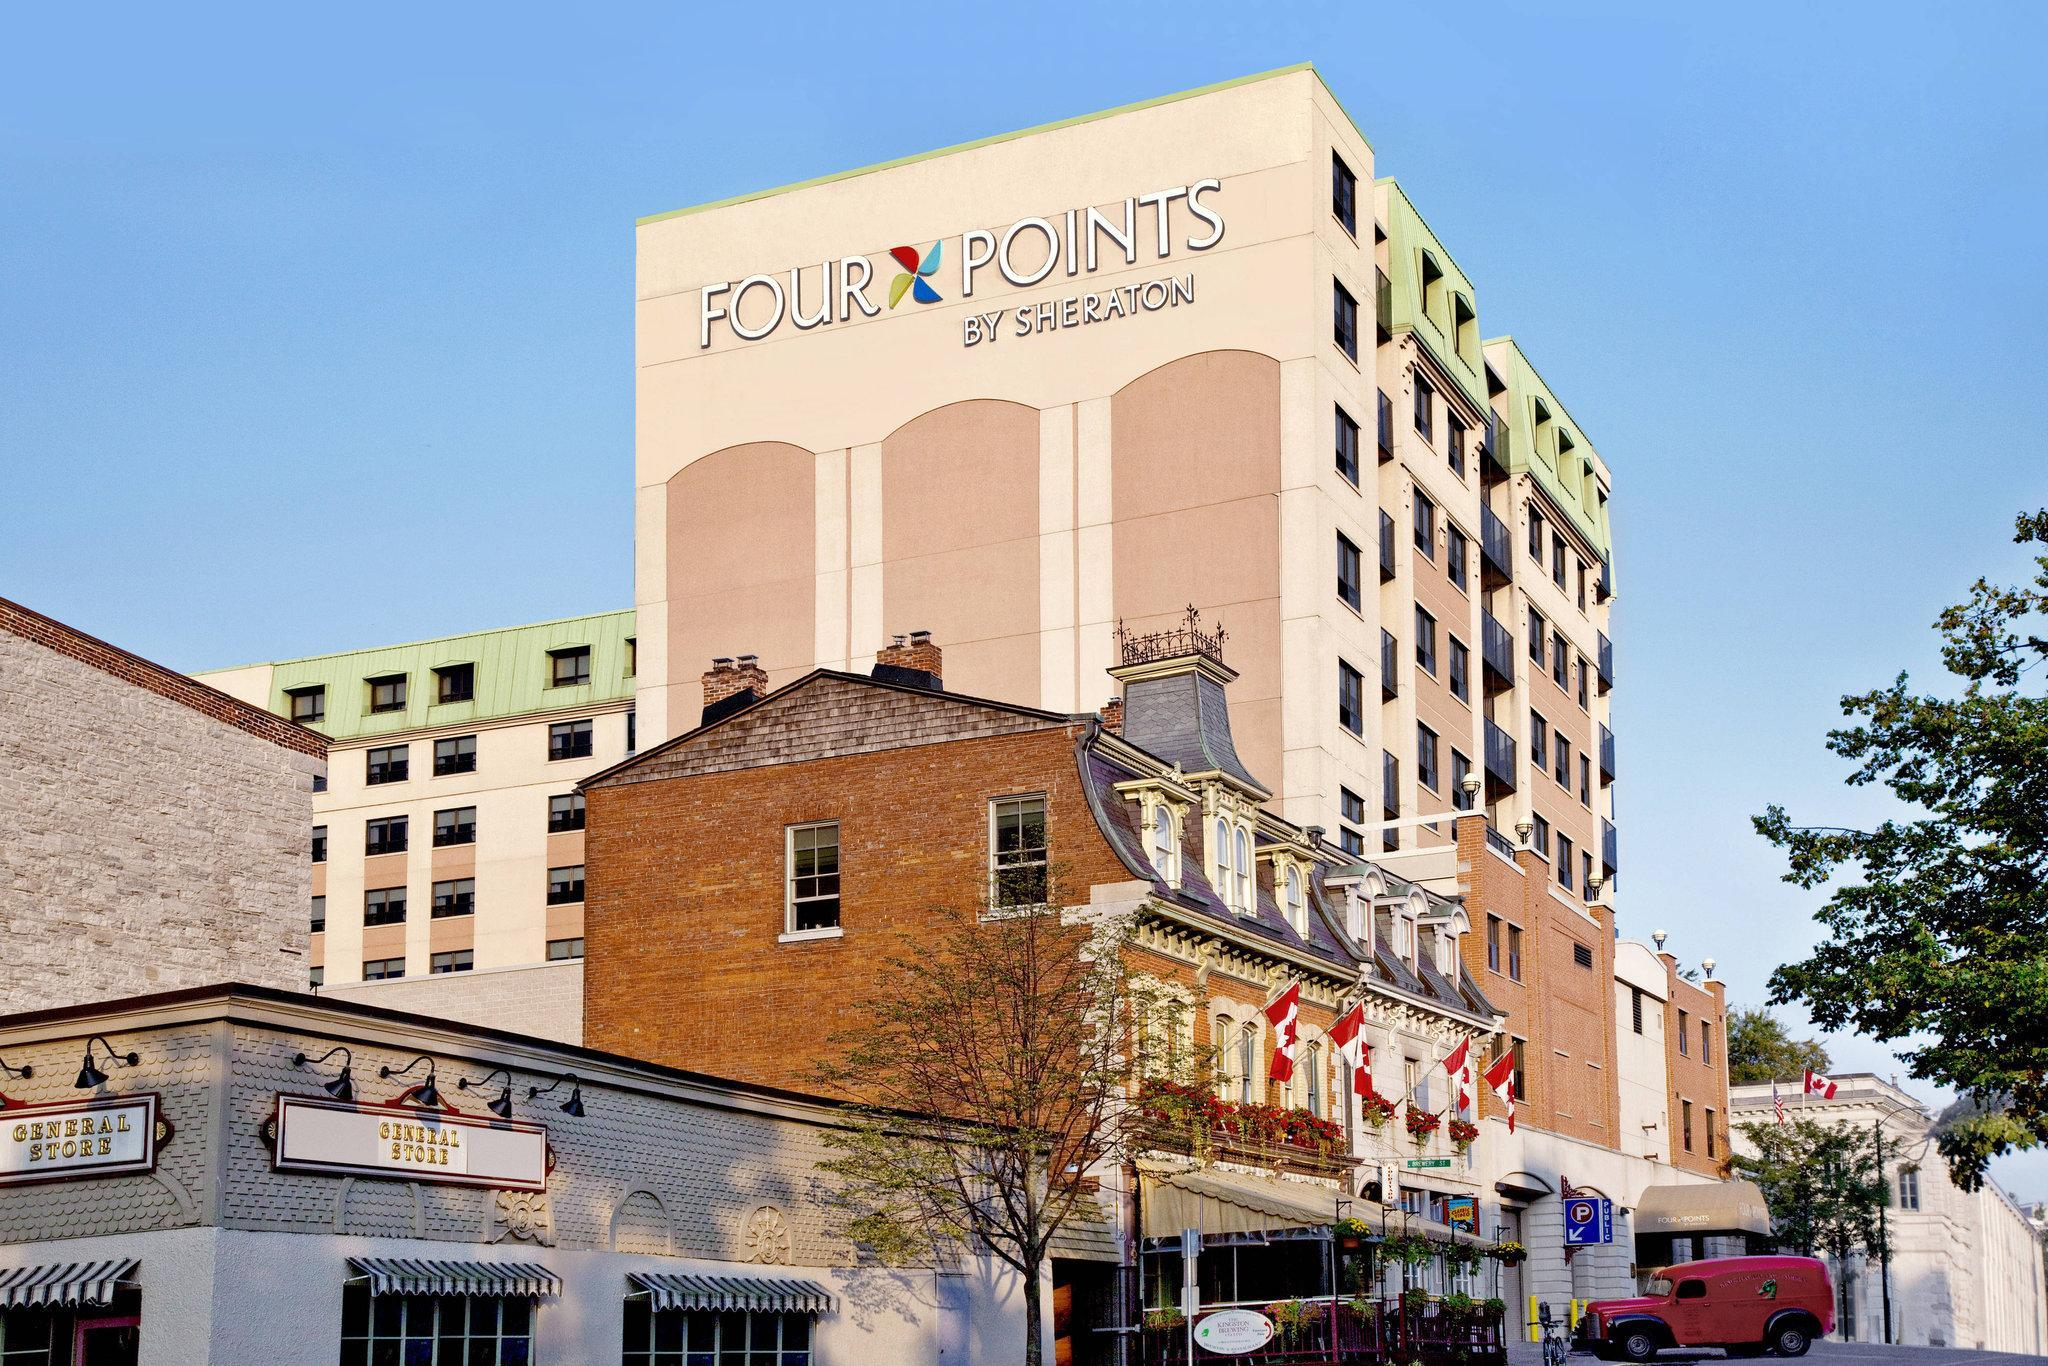 Four Points by Sheraton Hotel & Suites Kingston, Frontenac